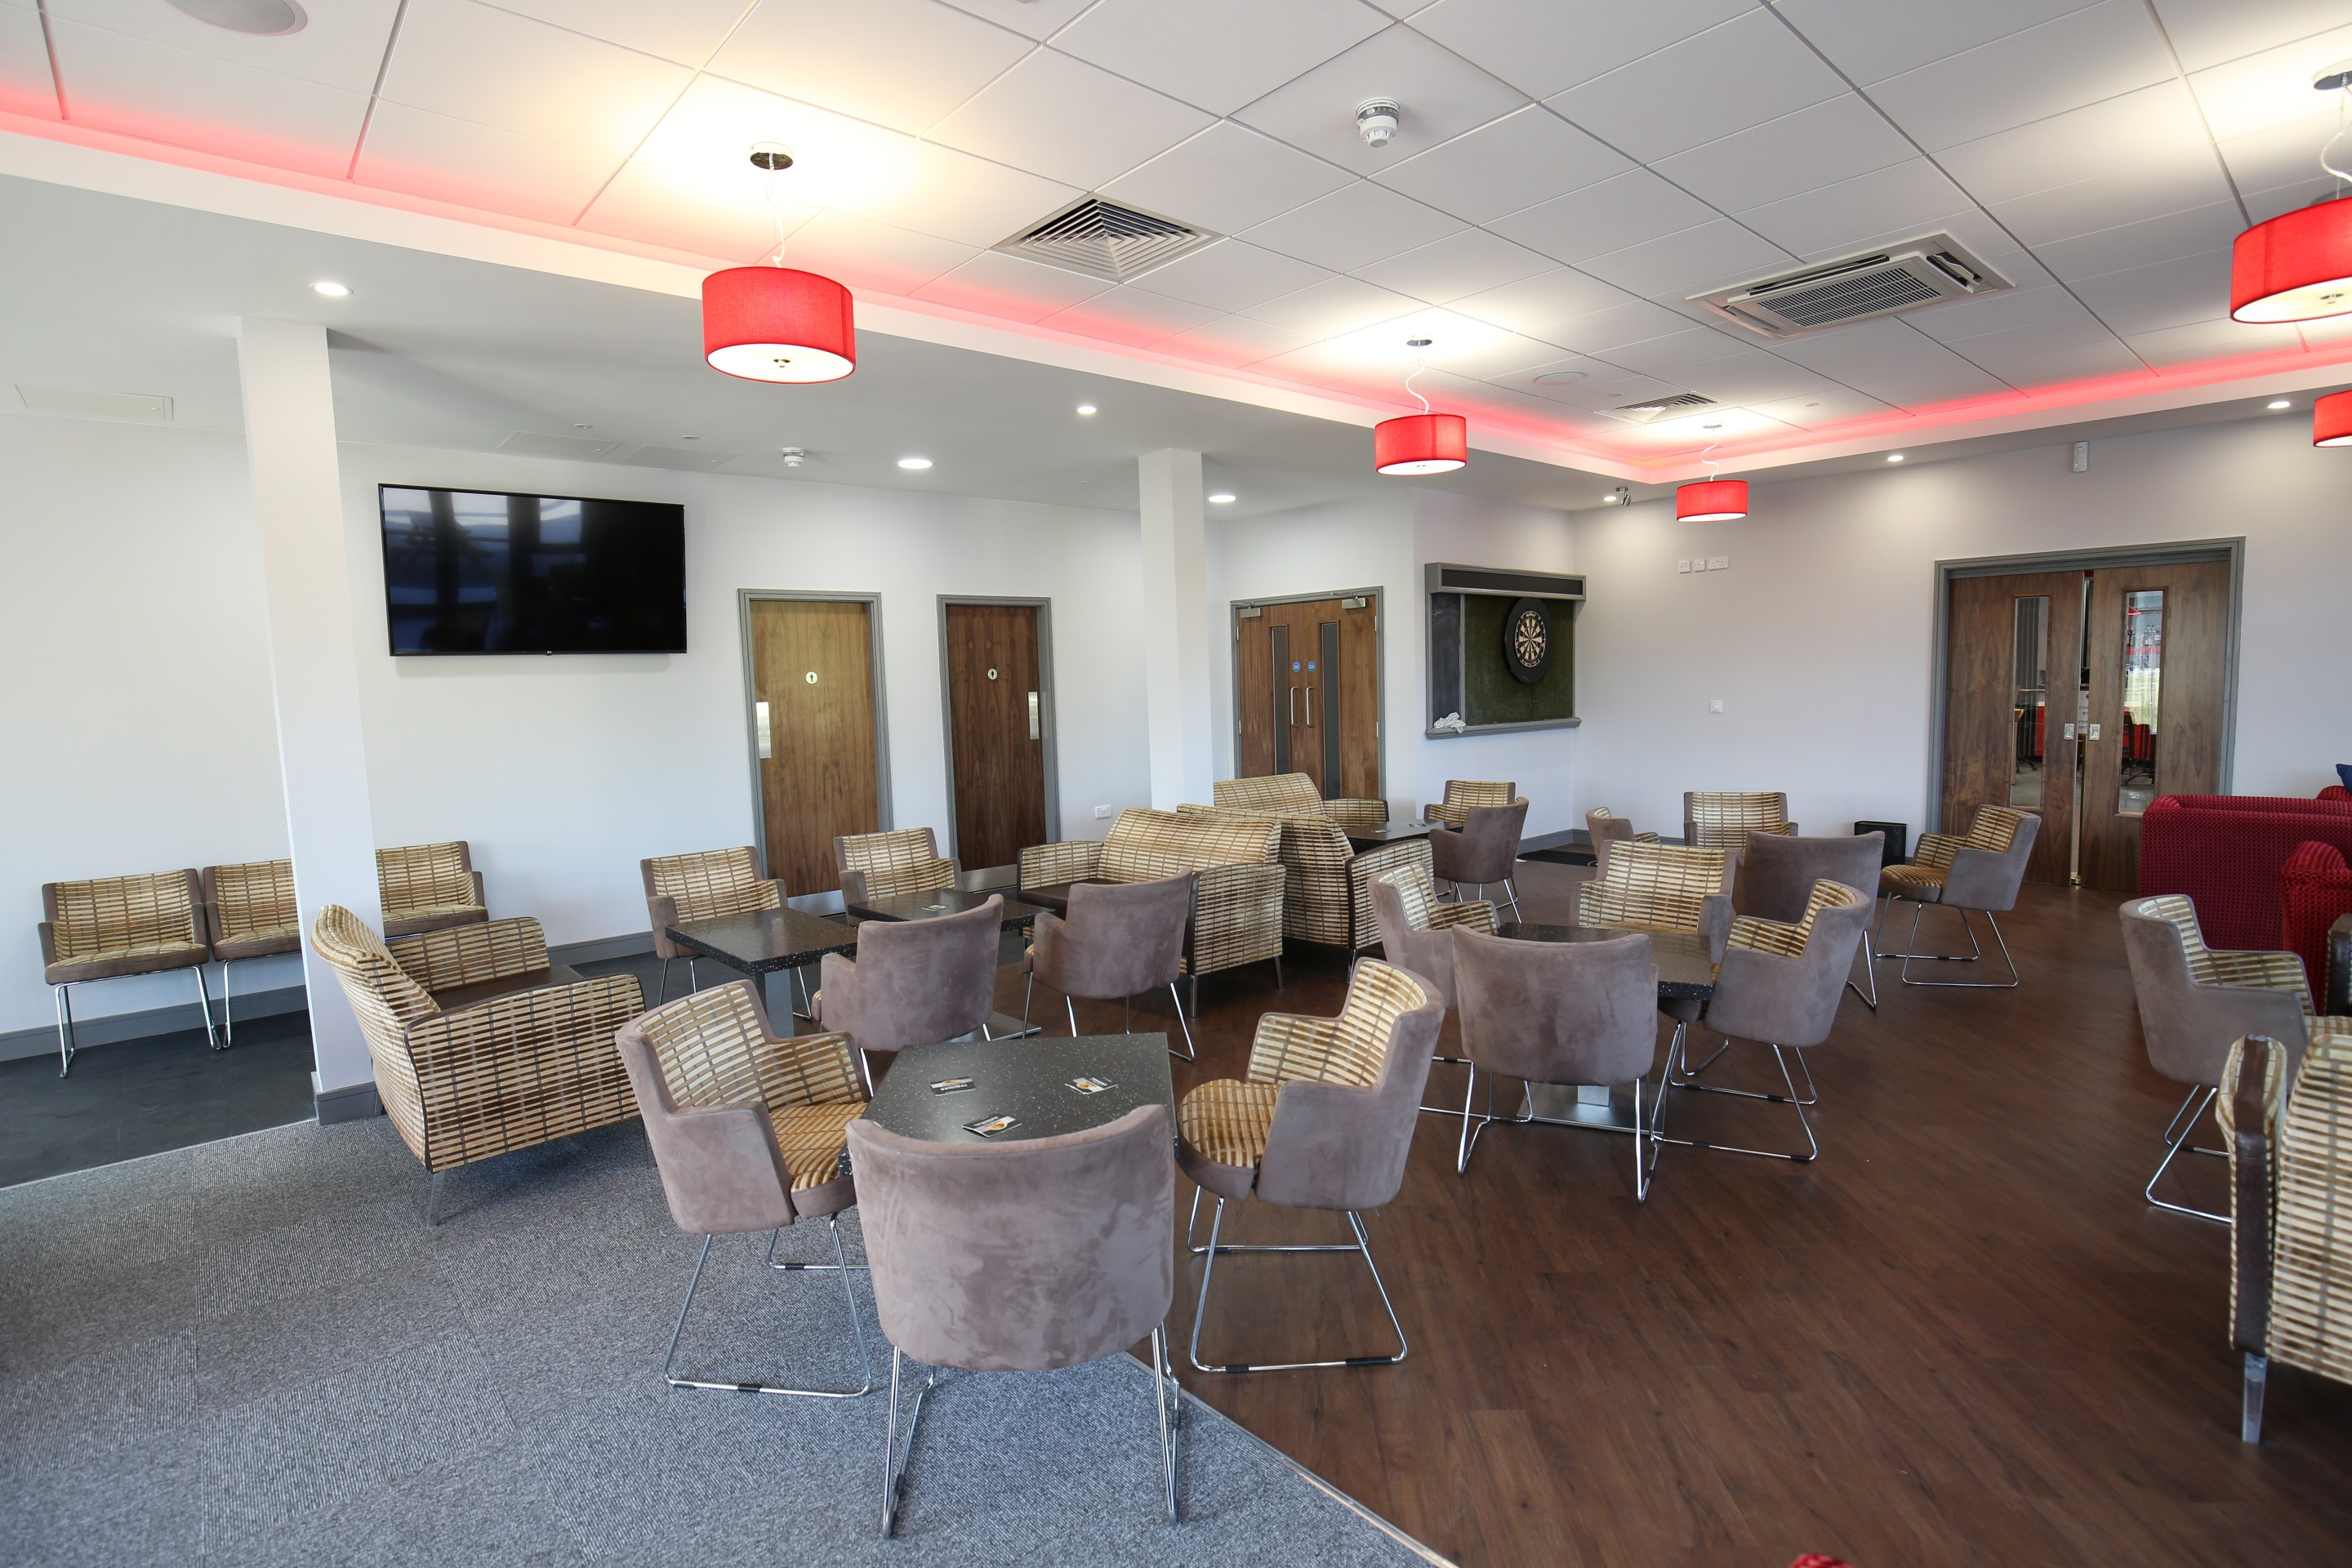 chair cover hire ellesmere port folding exercise as seen on tv function room wirral vauxhall motors sports club chairs and tables in lounge area